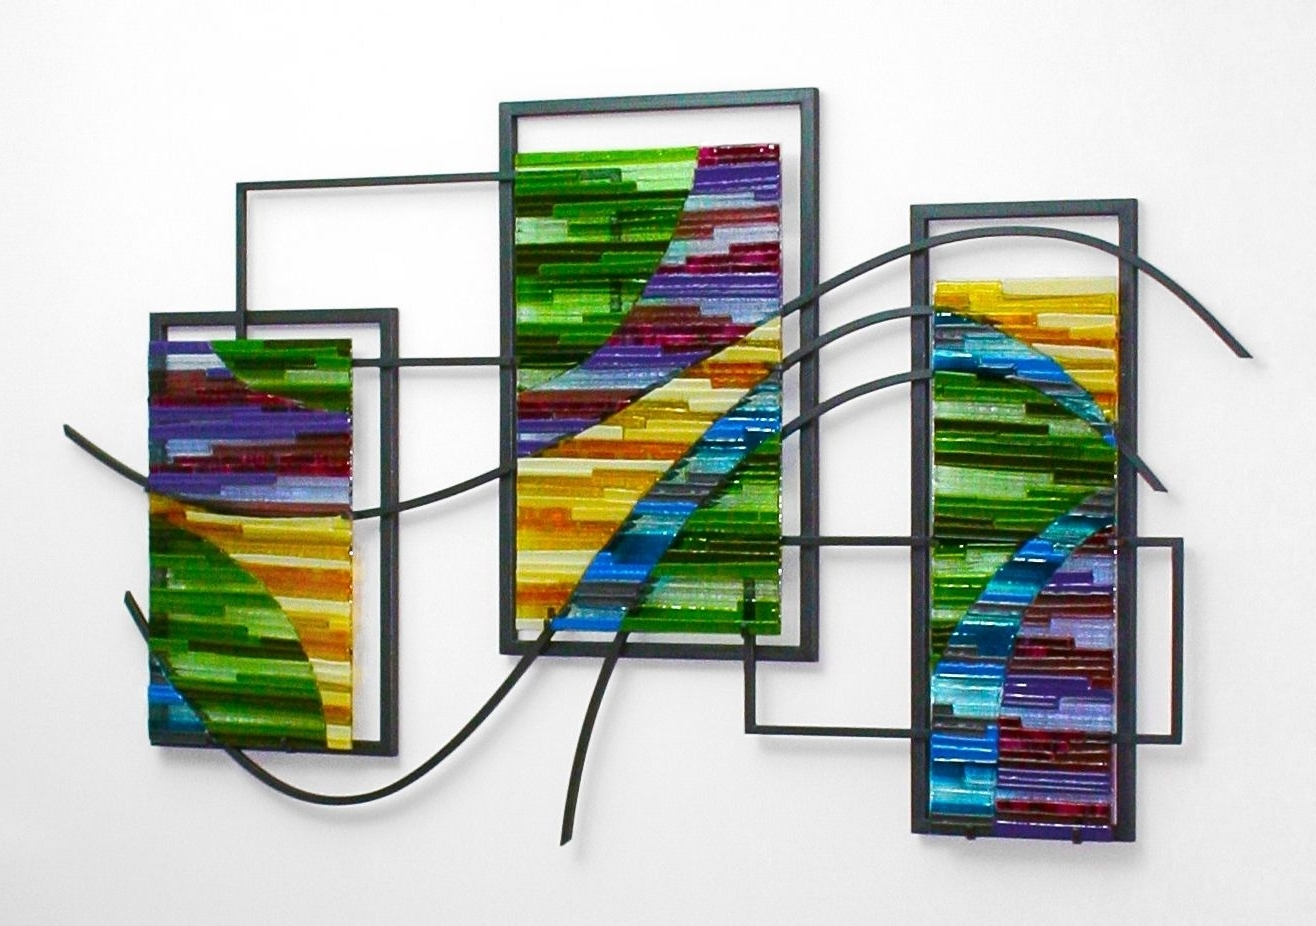 Trendy Custom Made Fused Glass And Metal Wall Artbonnie M. Hinz Throughout Fused Glass And Metal Wall Art (Gallery 1 of 15)